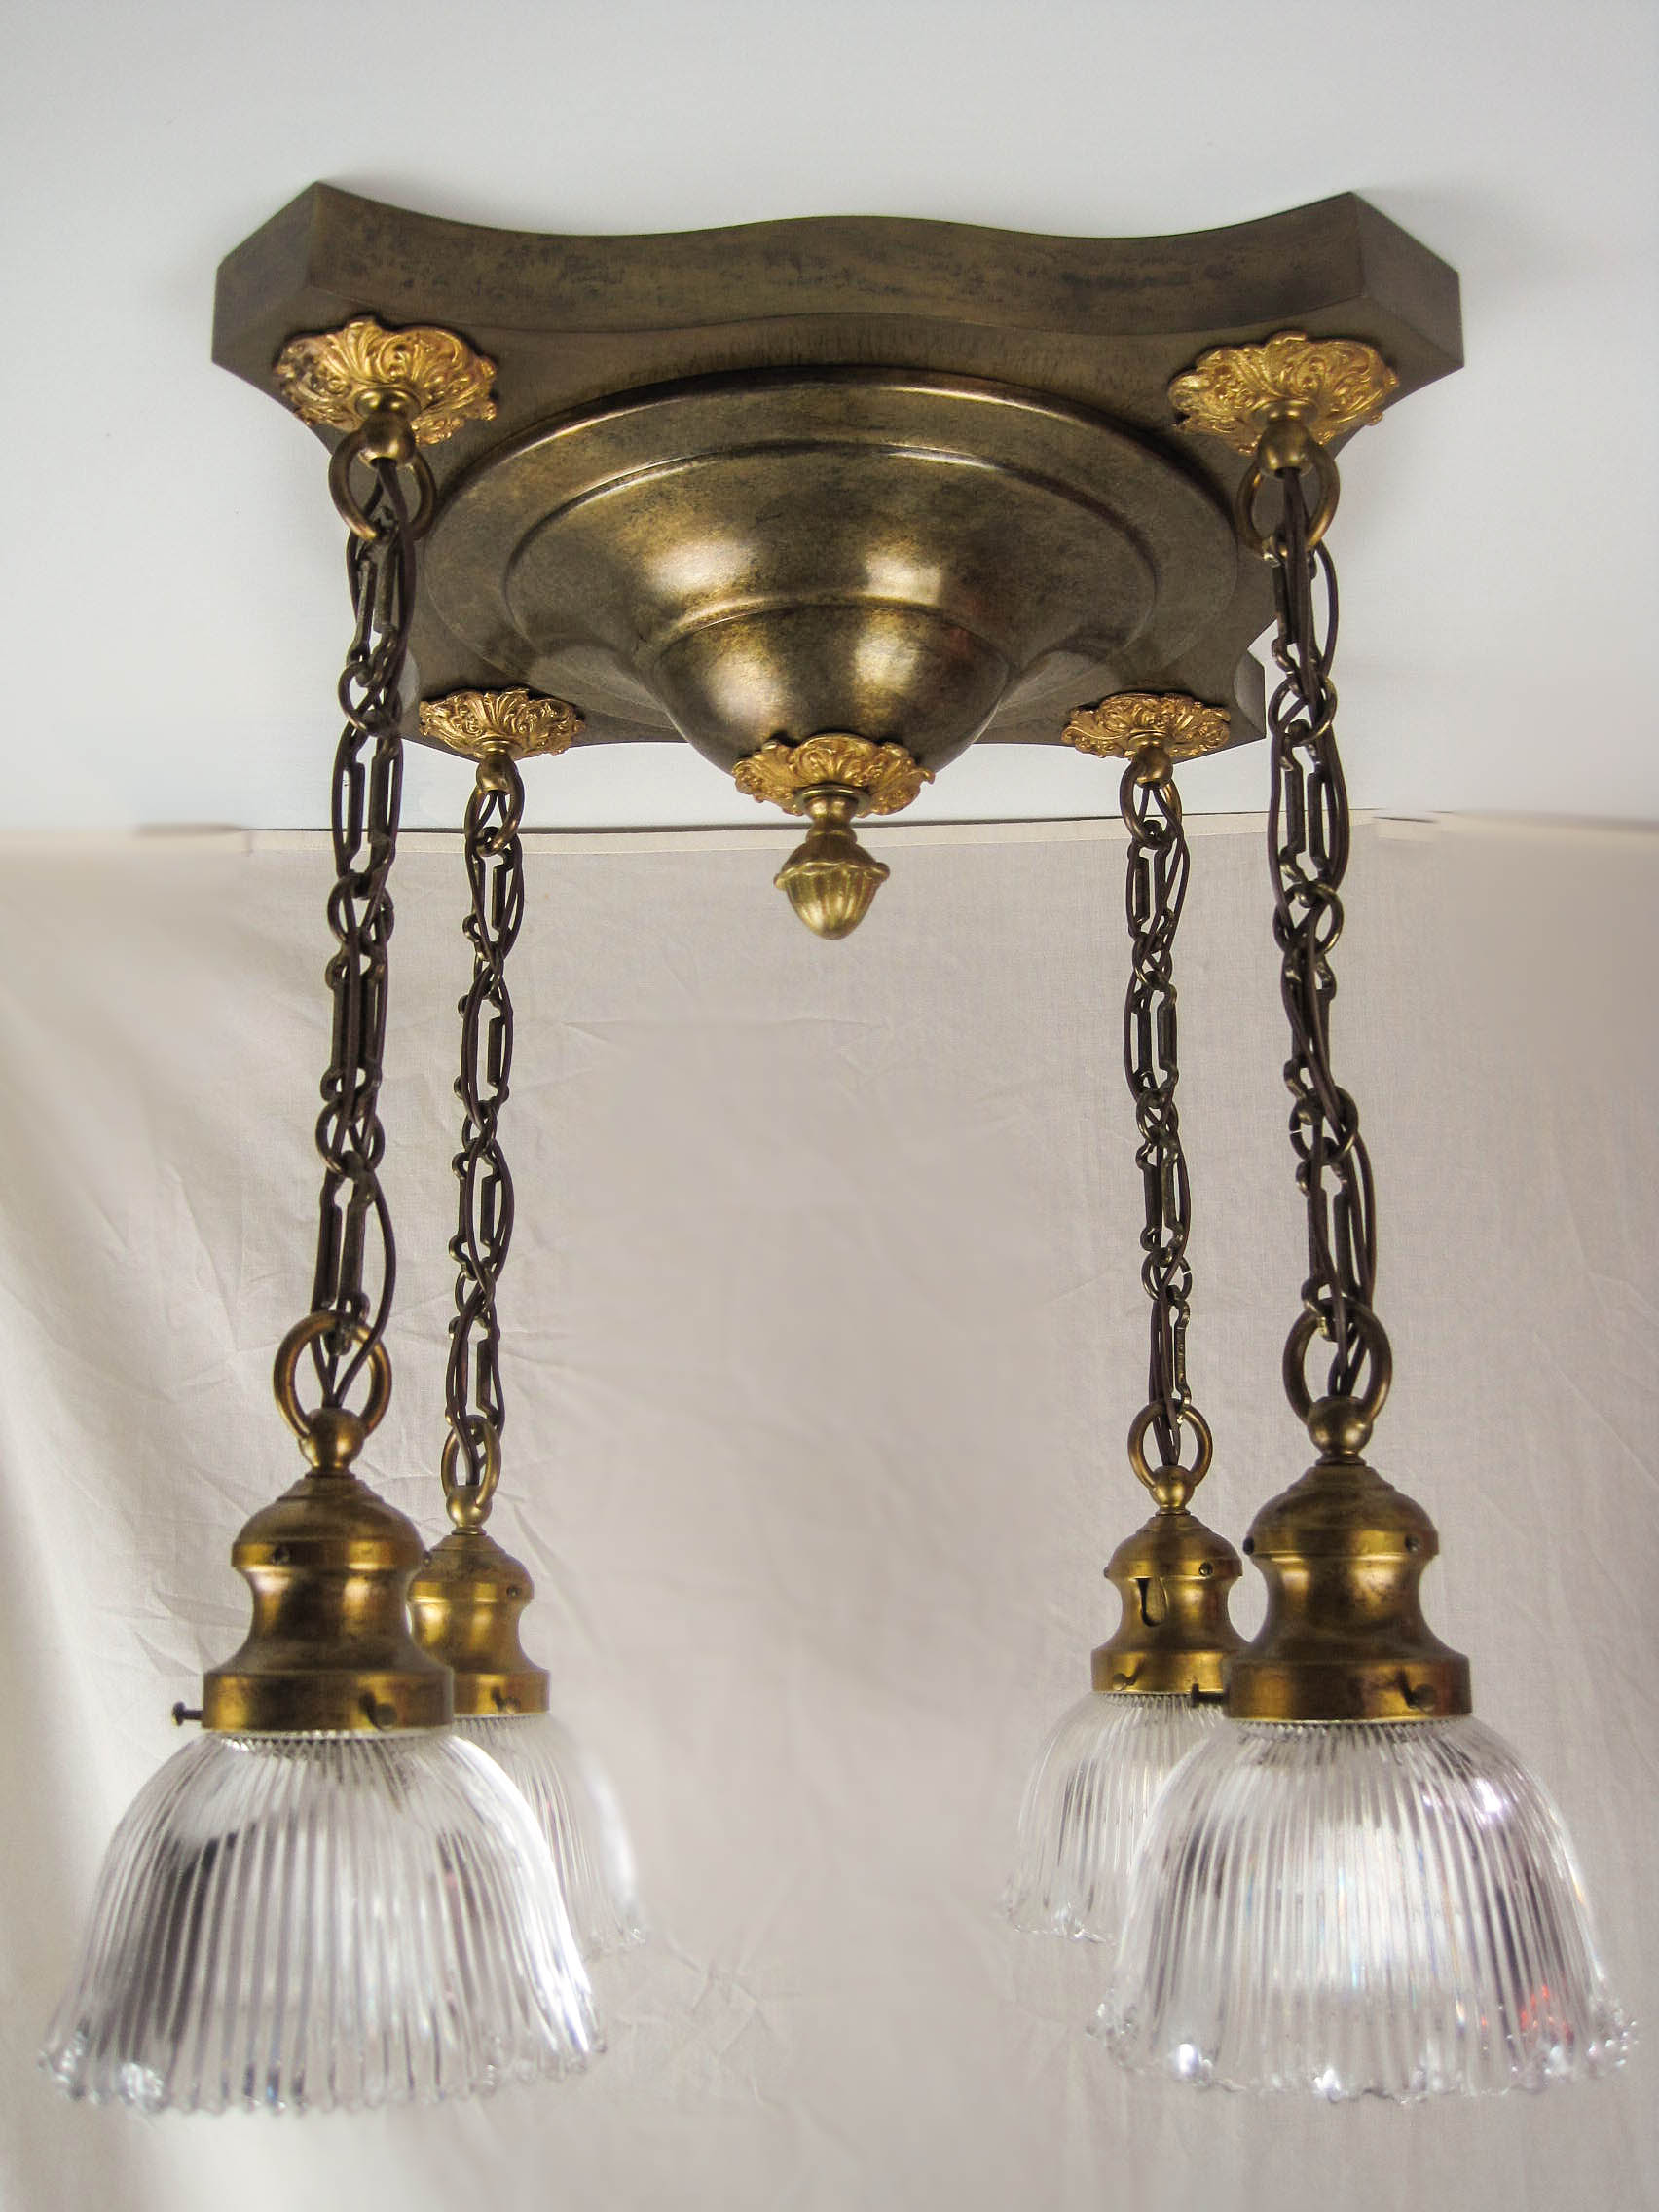 Edwardian Flush Mount Light Fixture 4 Light